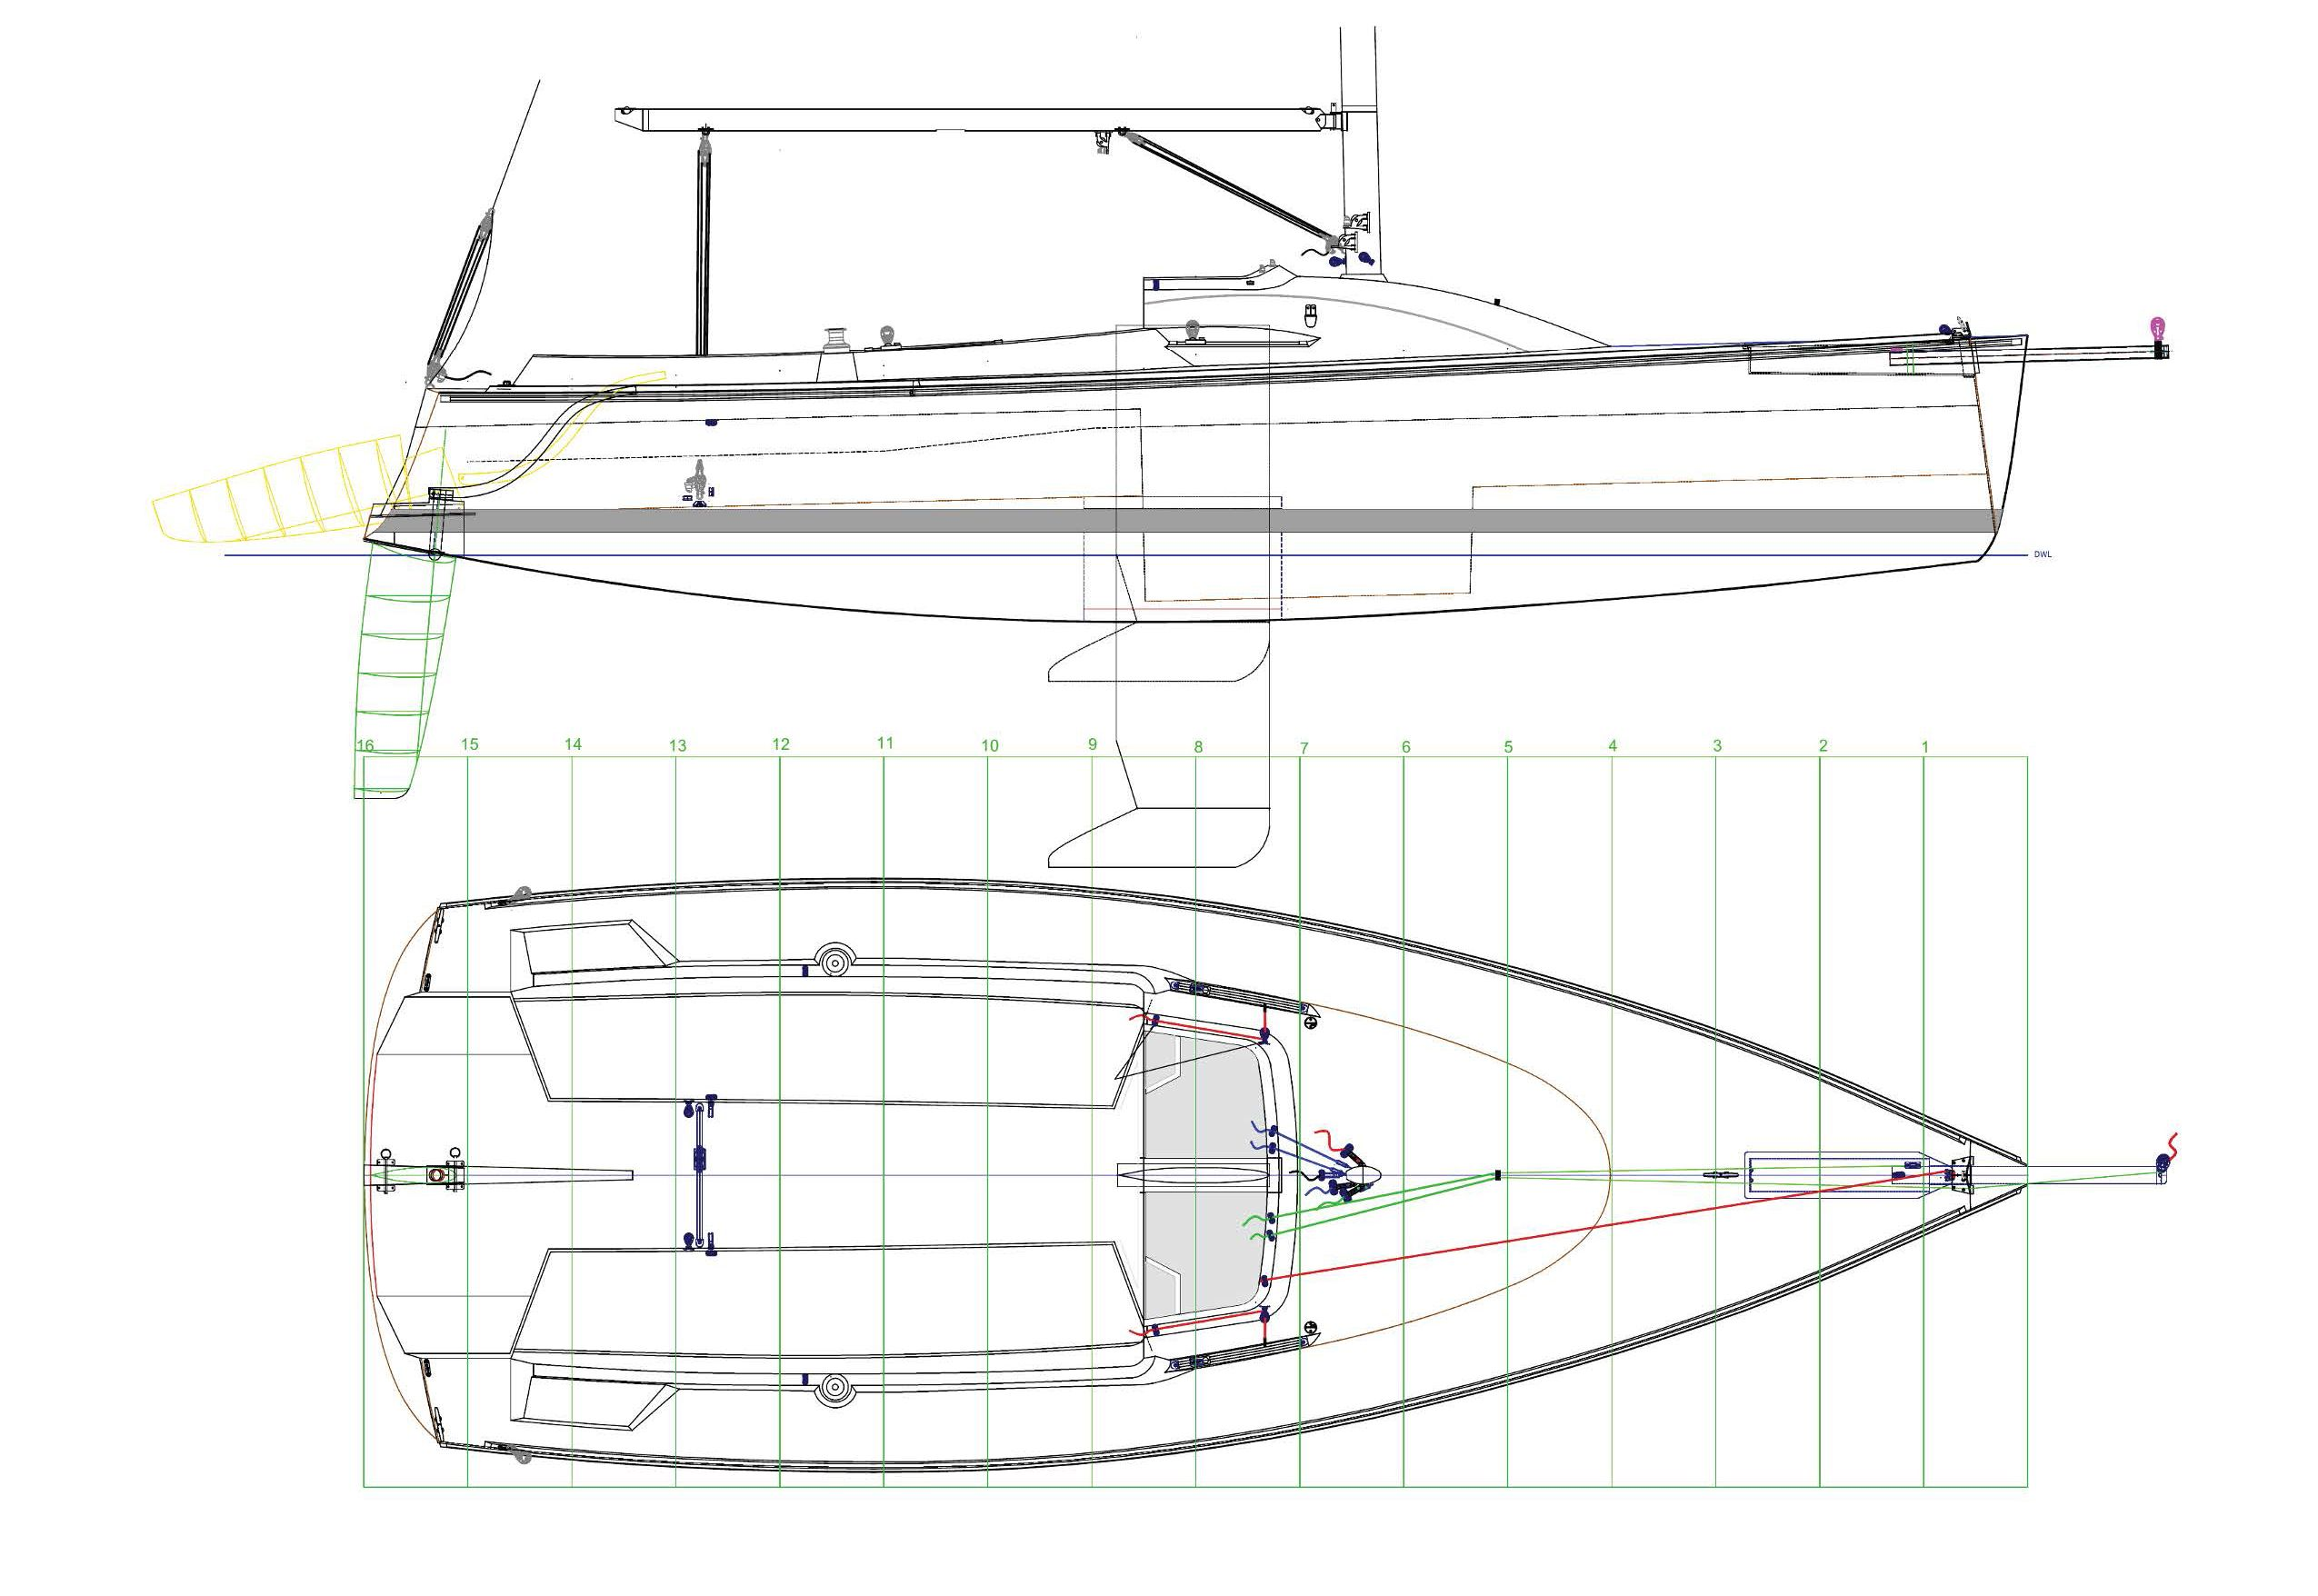 The Tartan 245 as shown with cassette rudder assembly, lifting keel and asymmetric spinnaker sprit well.